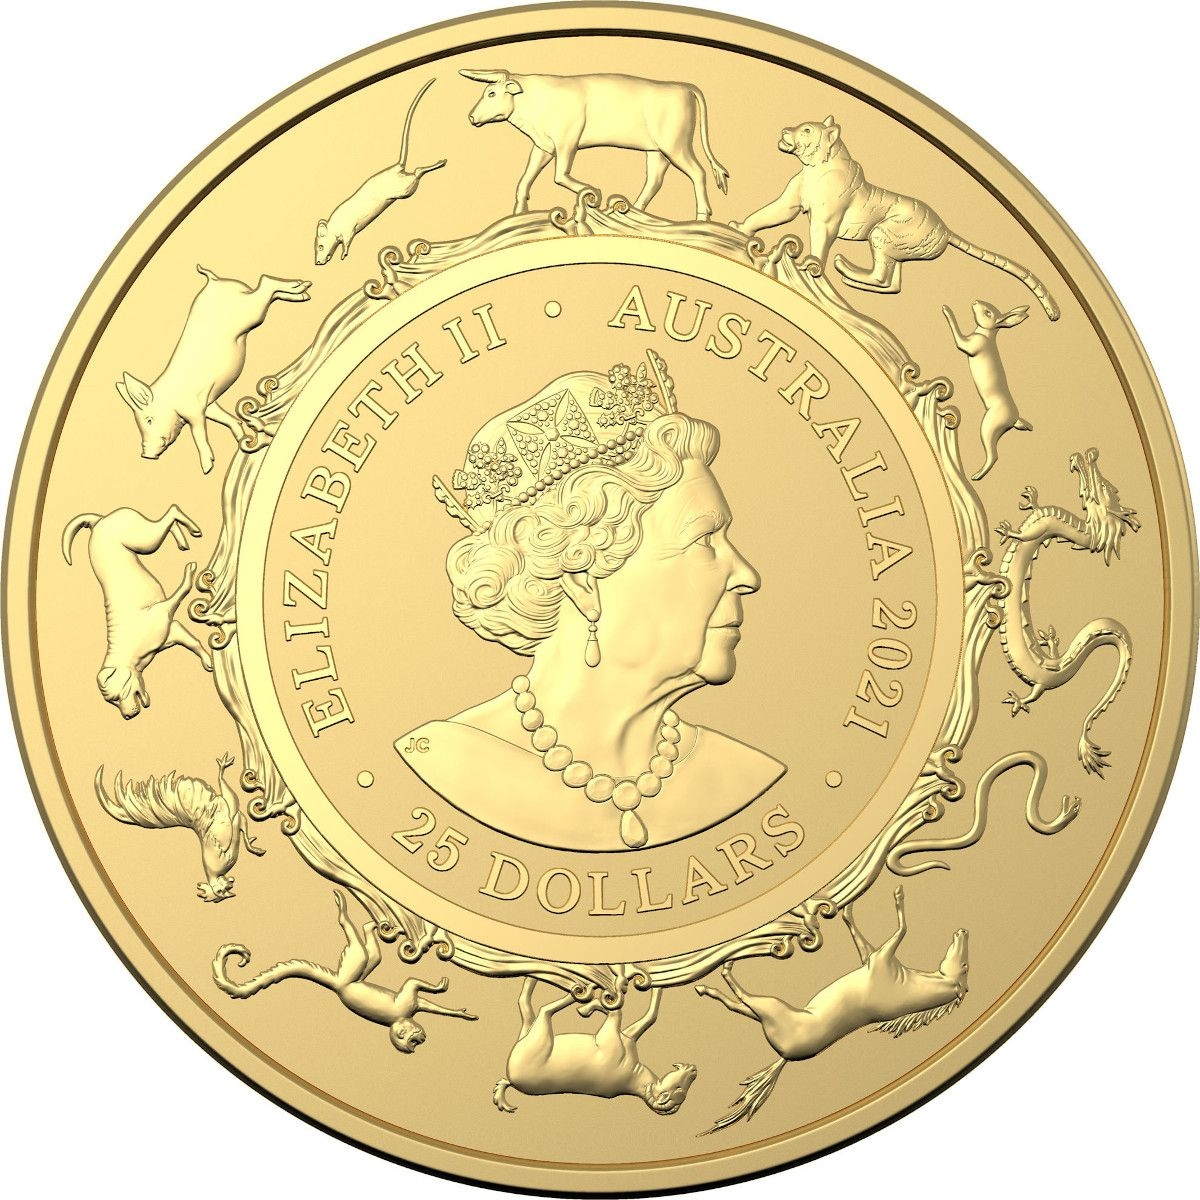 gold quarter ounce 2021 year of the ox (ram), coin from